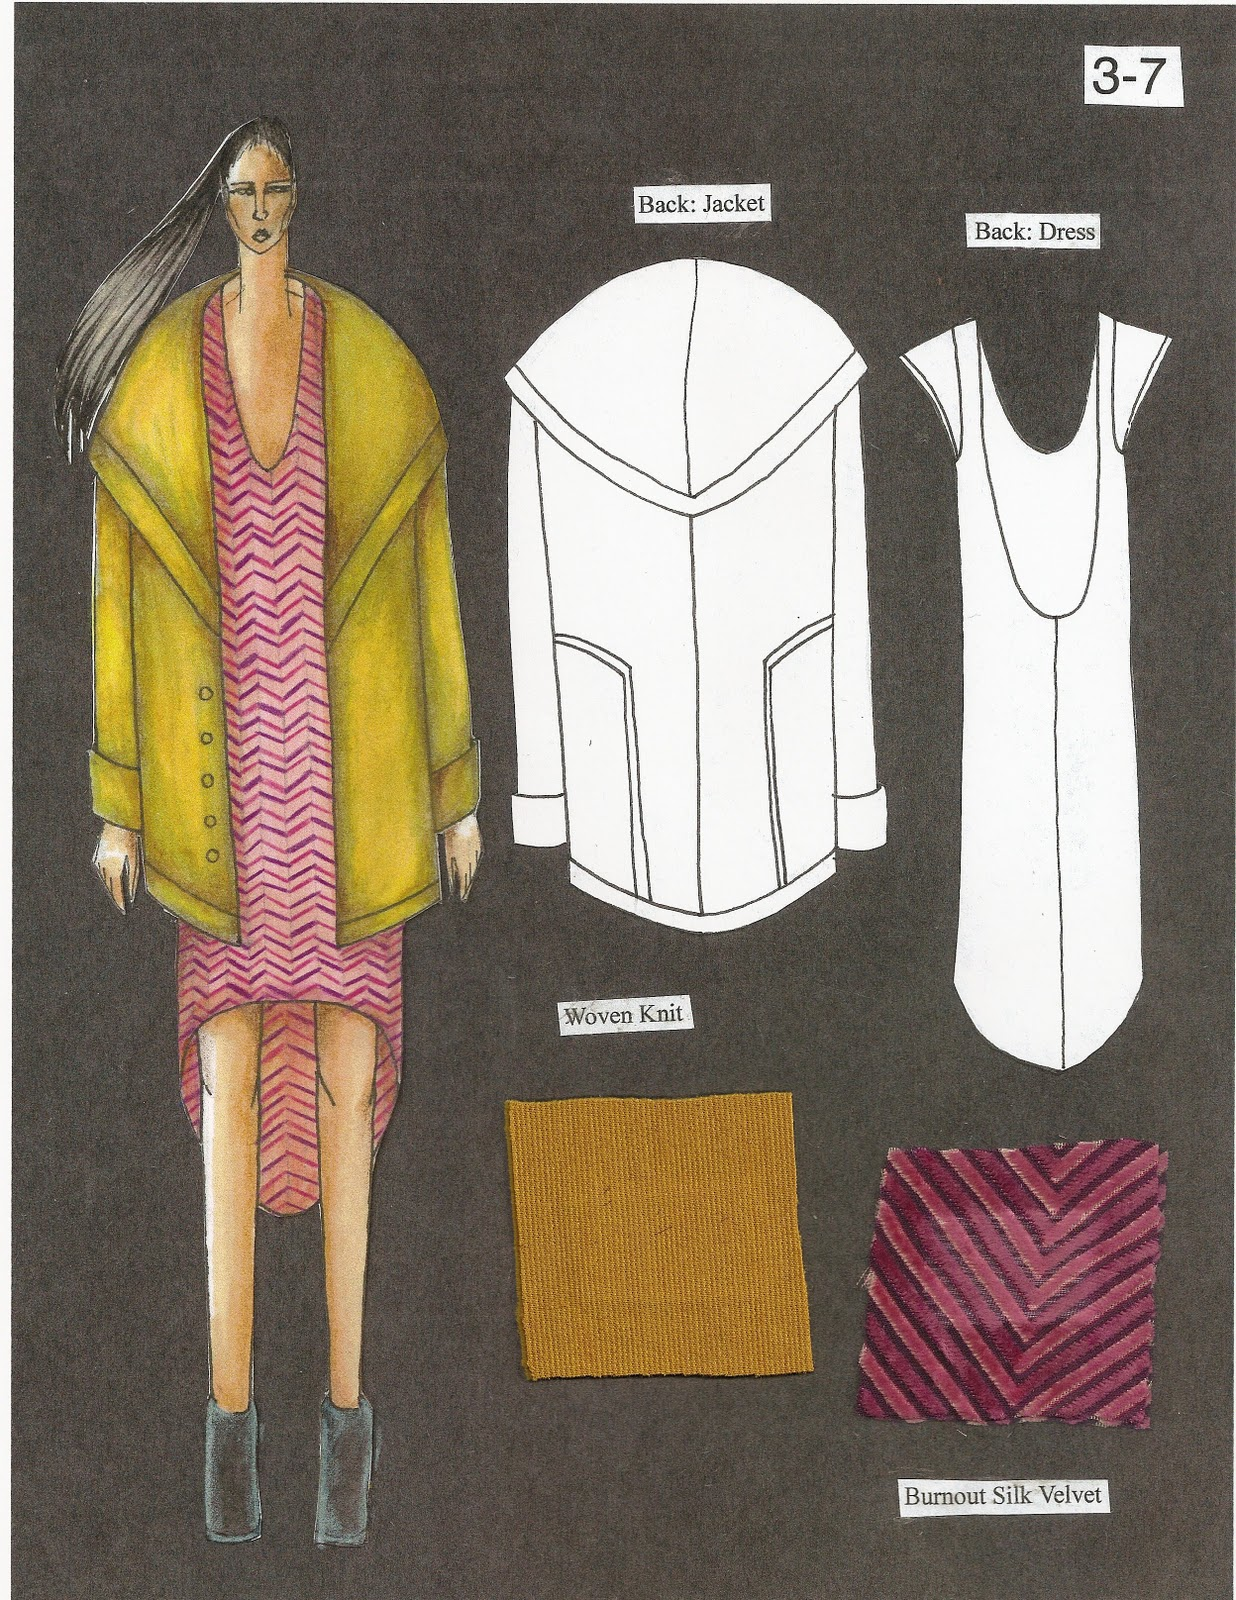 My Visual Pleasures Accepted Fashion Institute Of